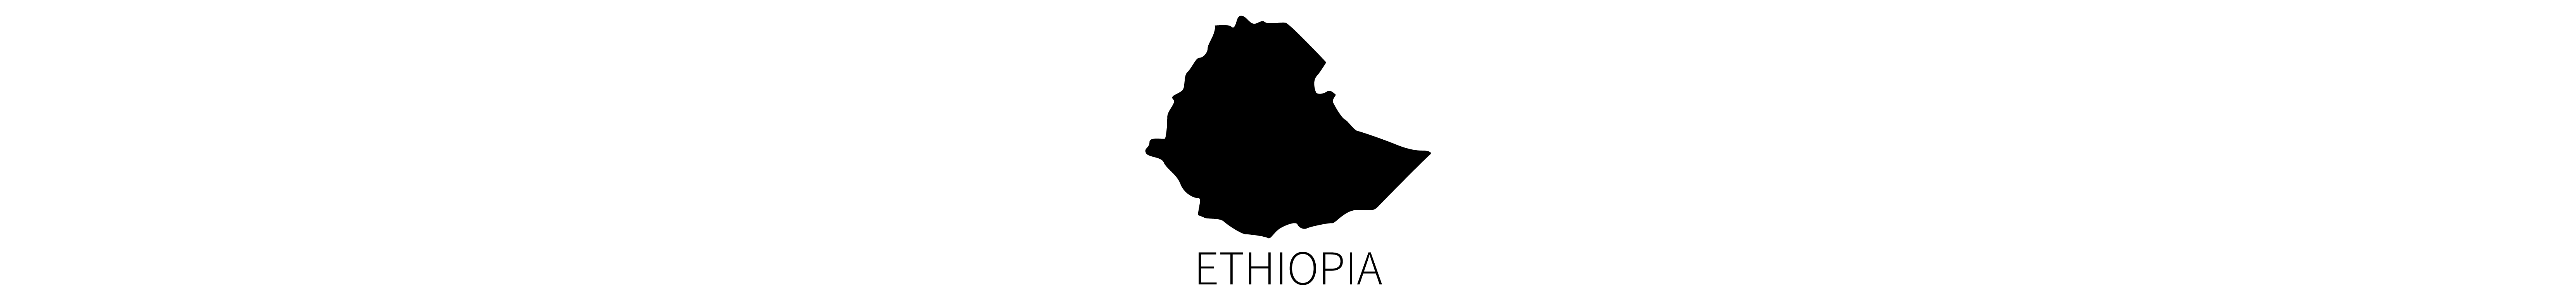 This image contains the black map silhouettes of the country of Ethiopia, with identifying all-caps text below.